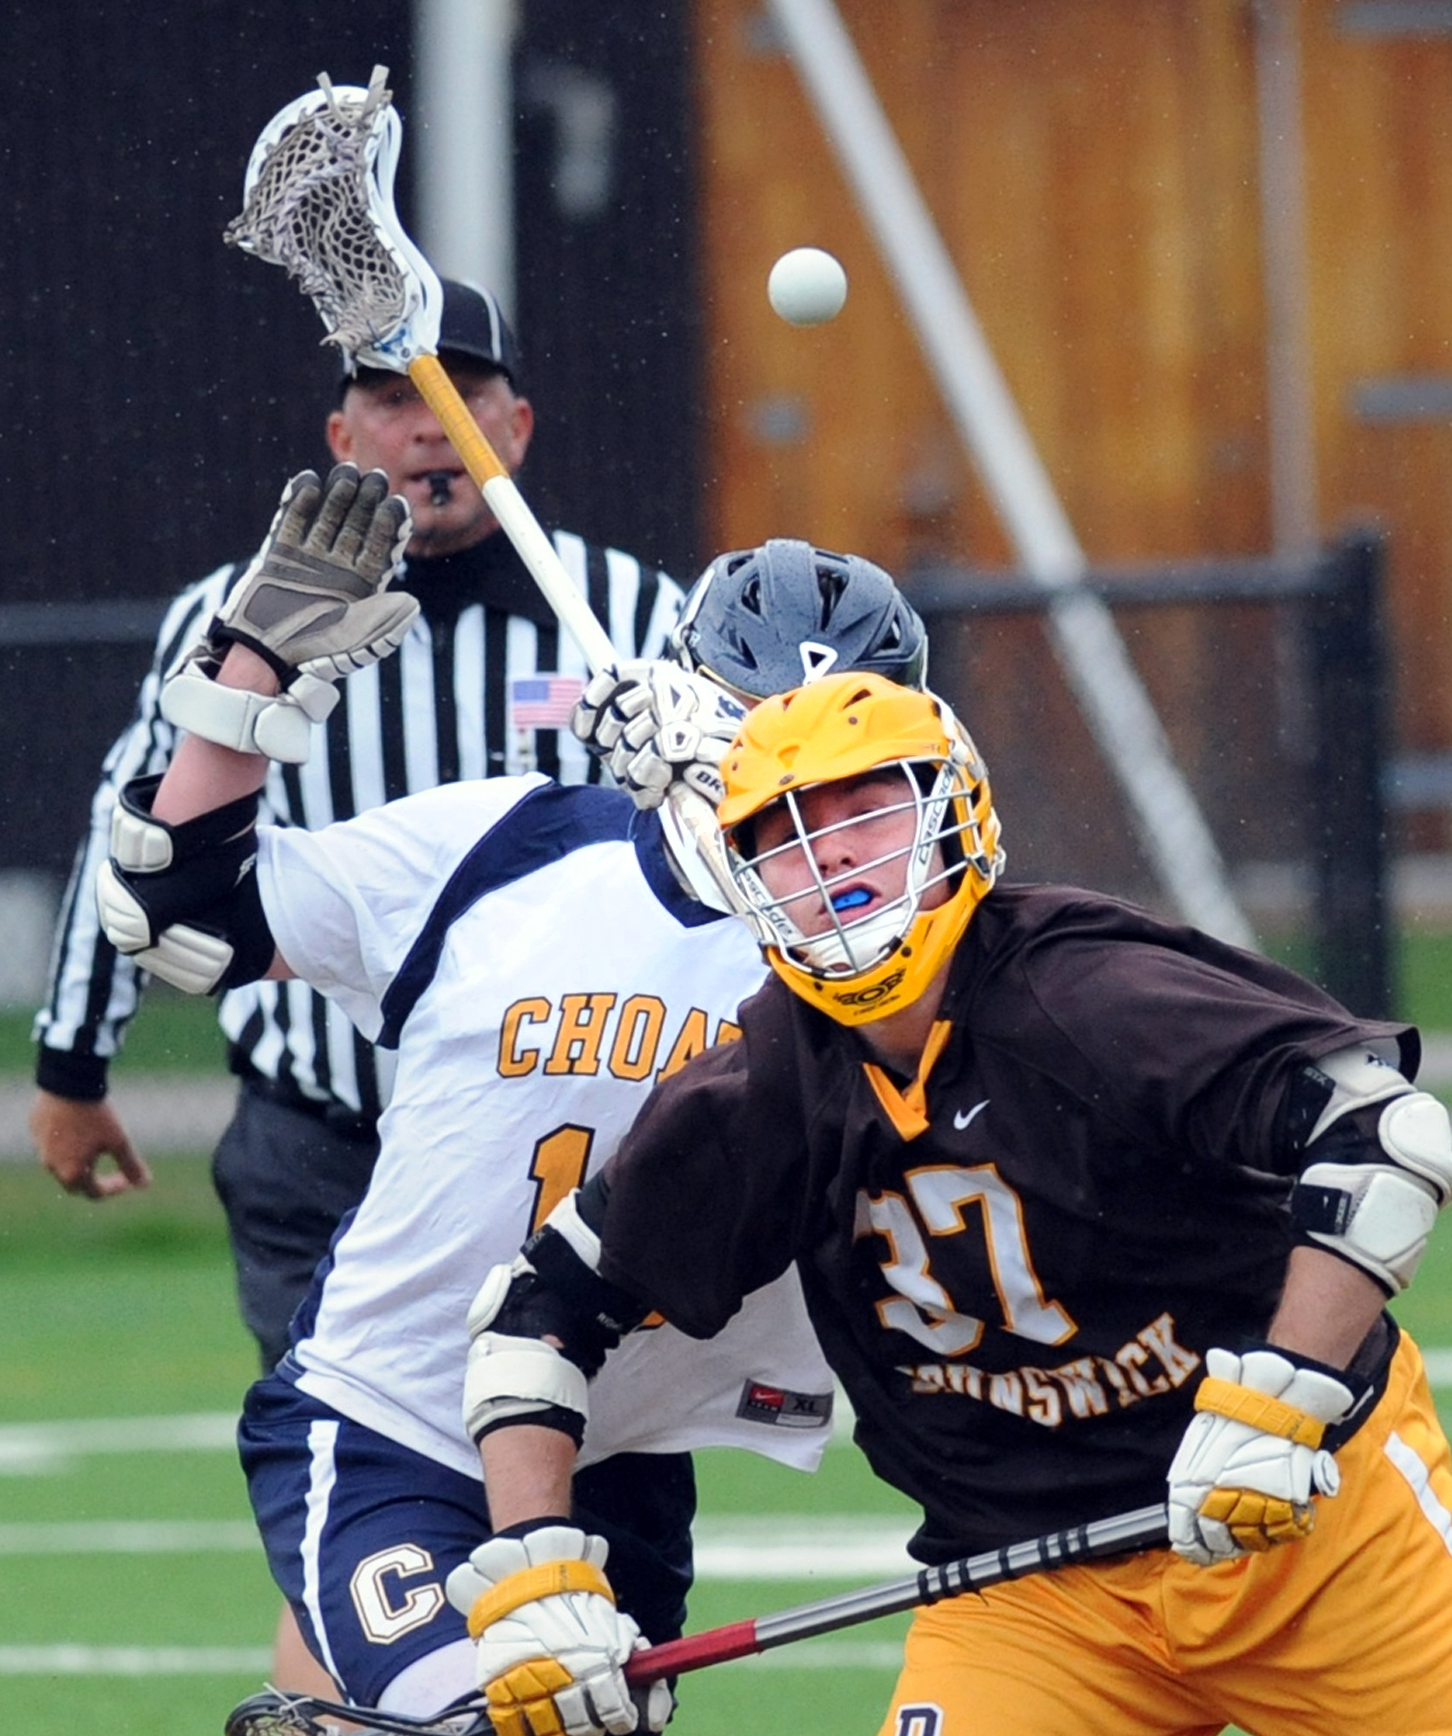 Brunswick Beats Lacrosse Rival Choate For Sixth Straight